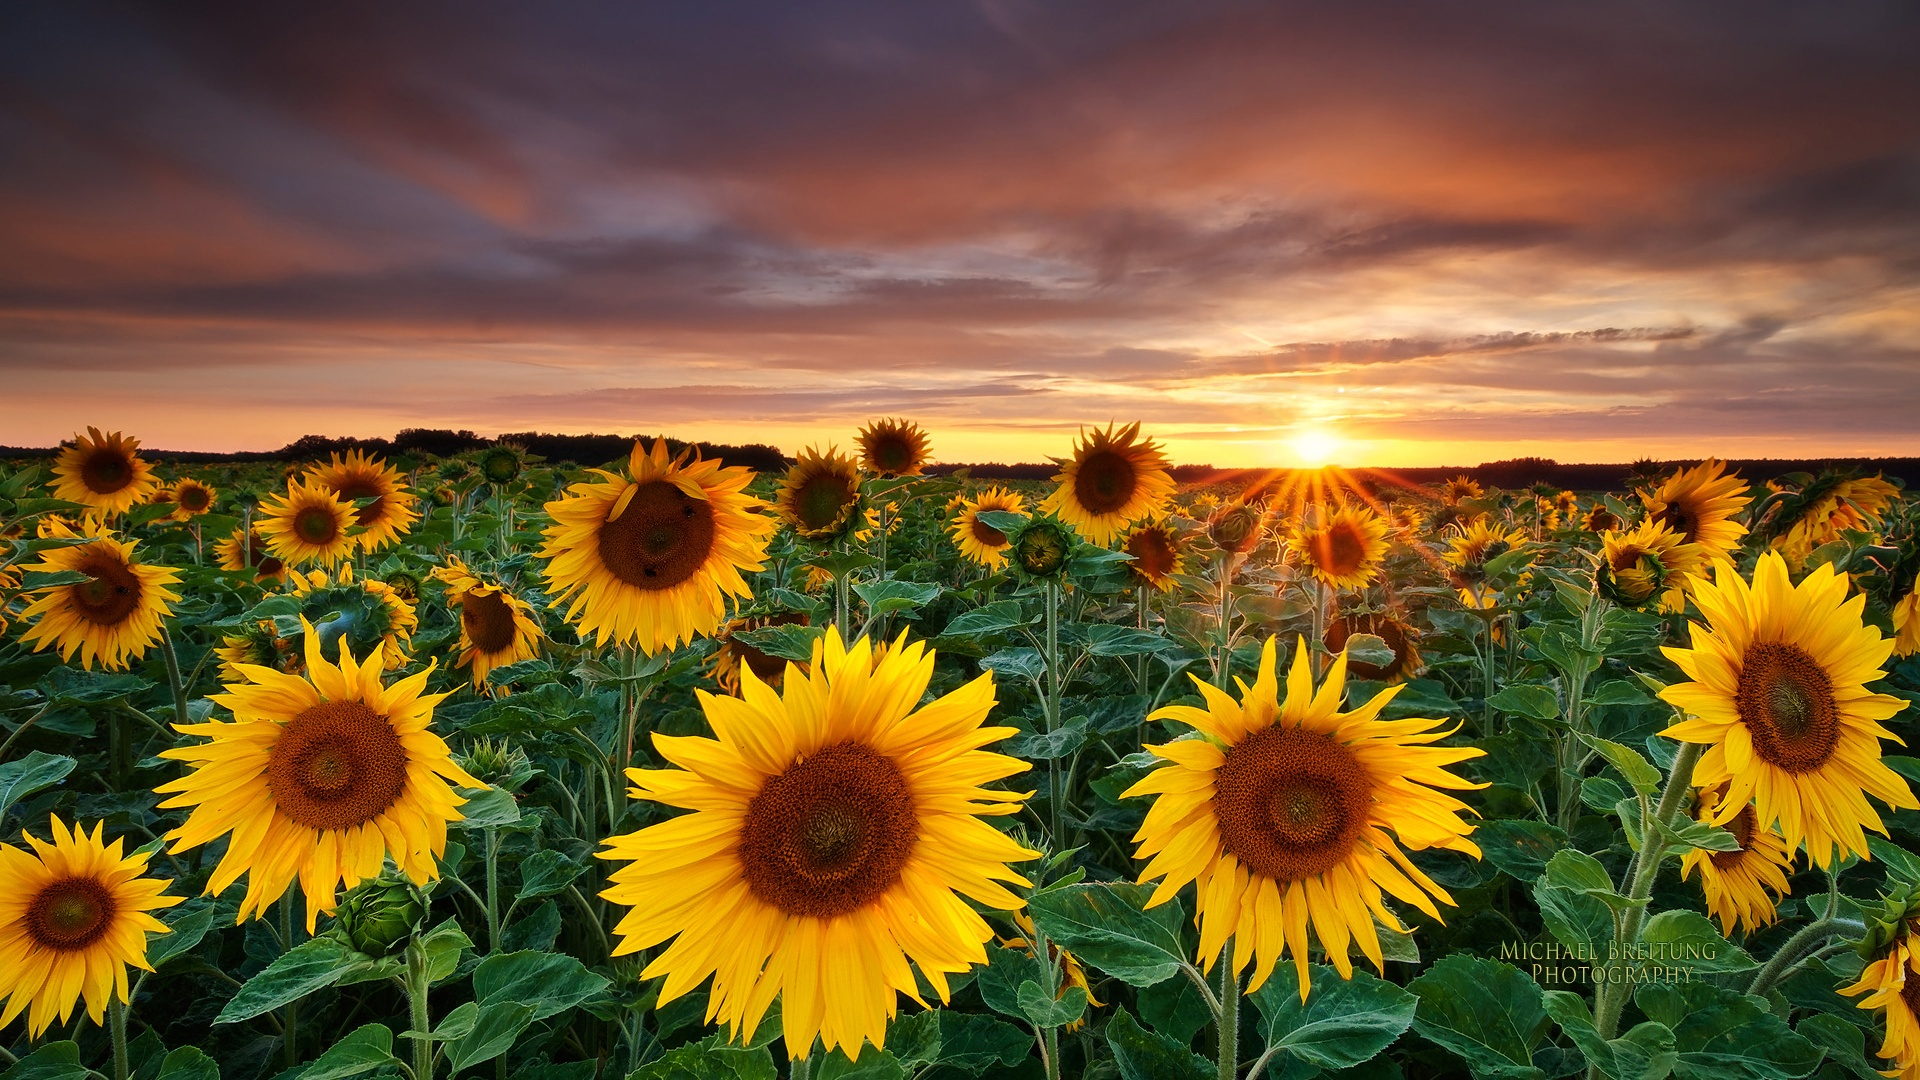 Sunflower hd wallpapers